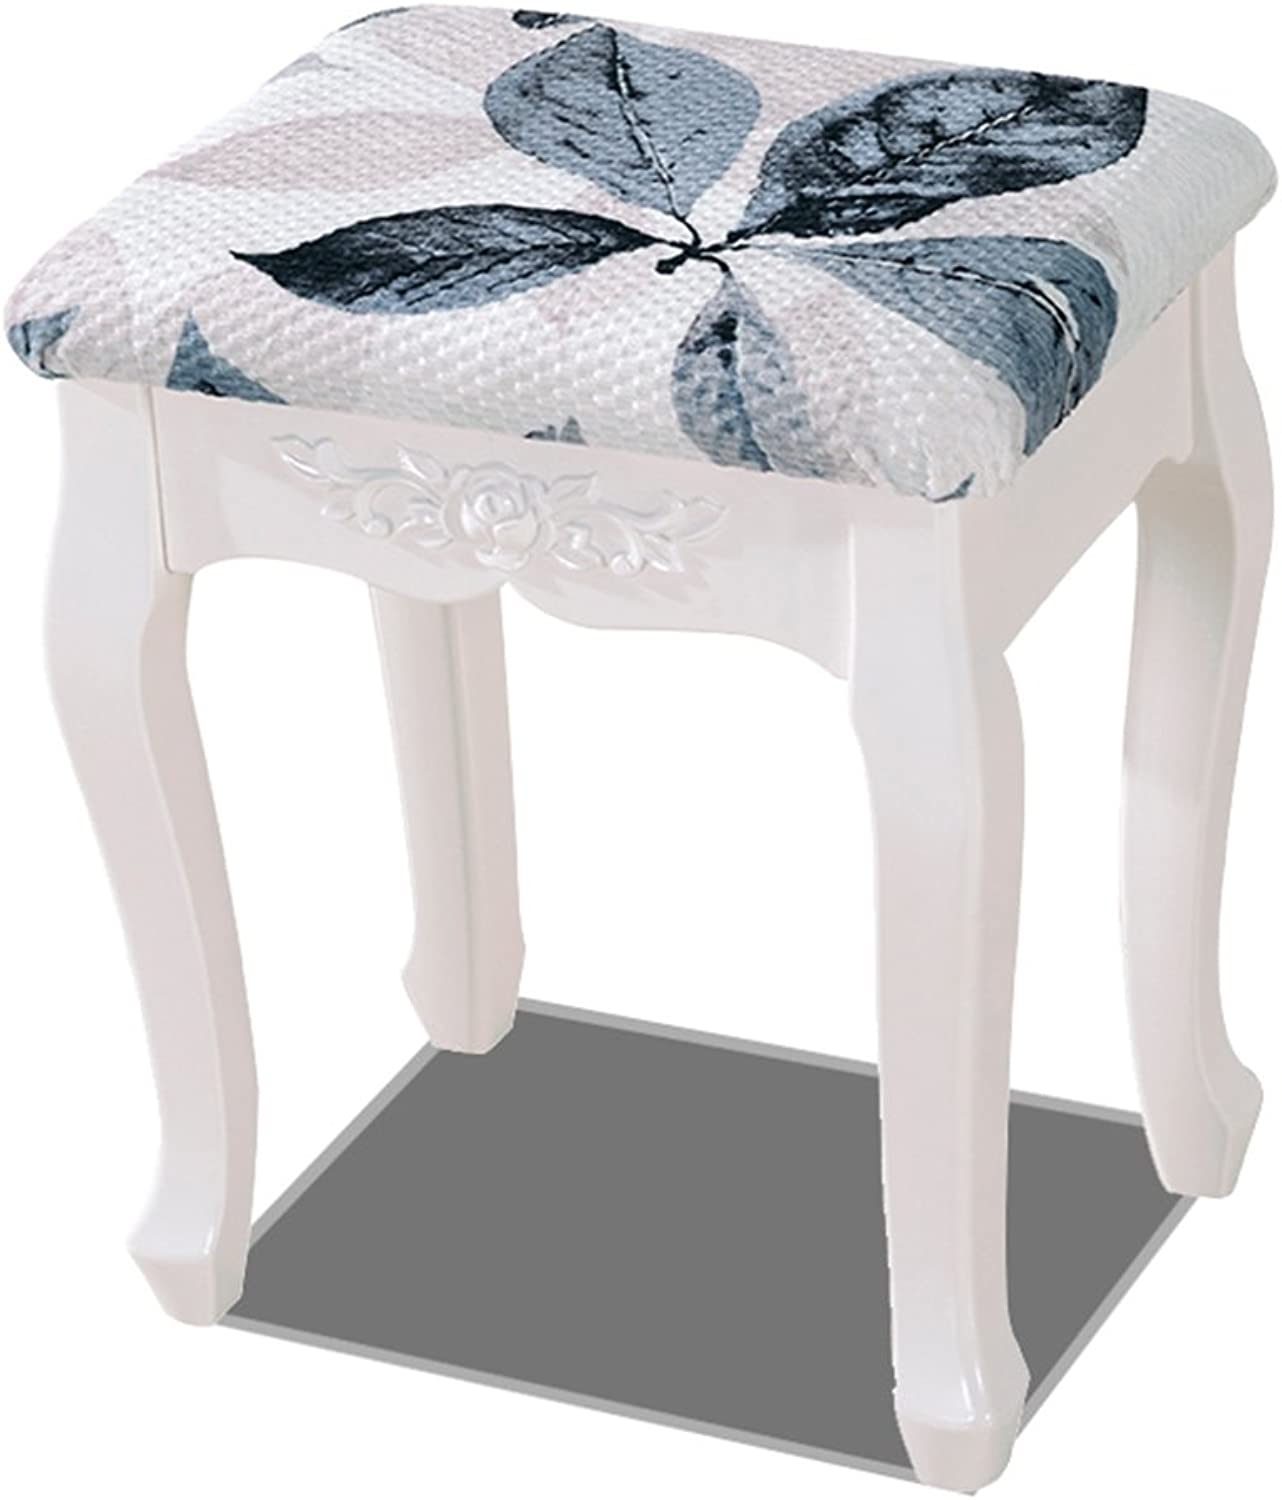 MAZHONG Barstools White Dresser Stool Padded Cushion Retro Piano Chair Plus Pad Makeup Seat (White Curved) (color   A)